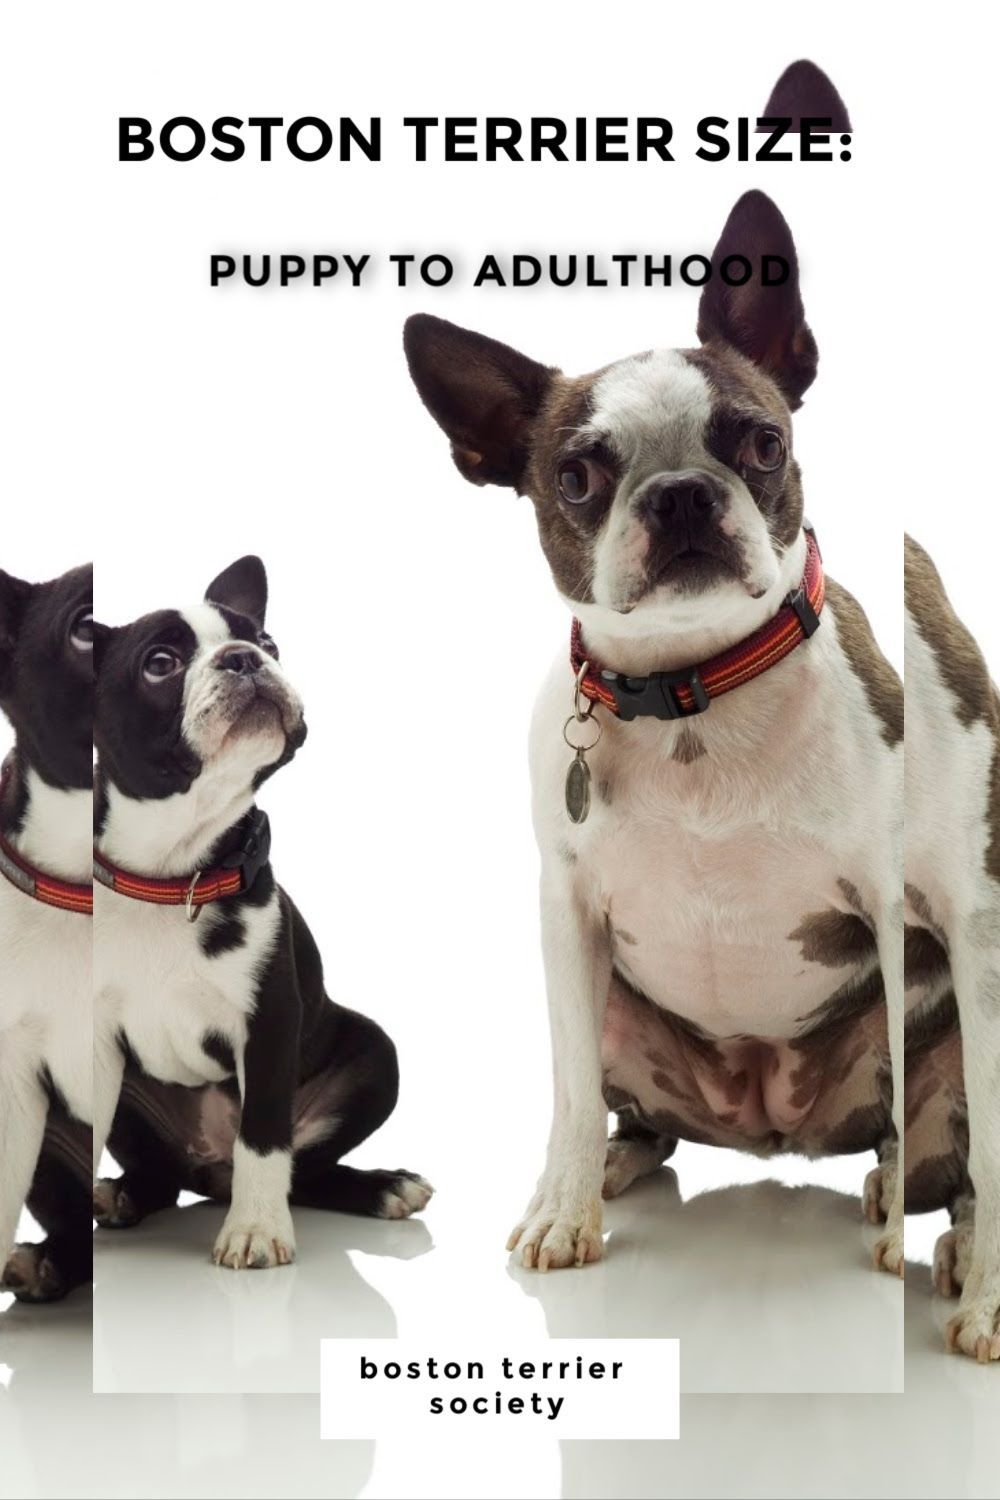 A Boston S First Year Stages Of Growth Puppy Development Boston Terrier Society In 2020 Boston Terrier Terrier Puppy Development